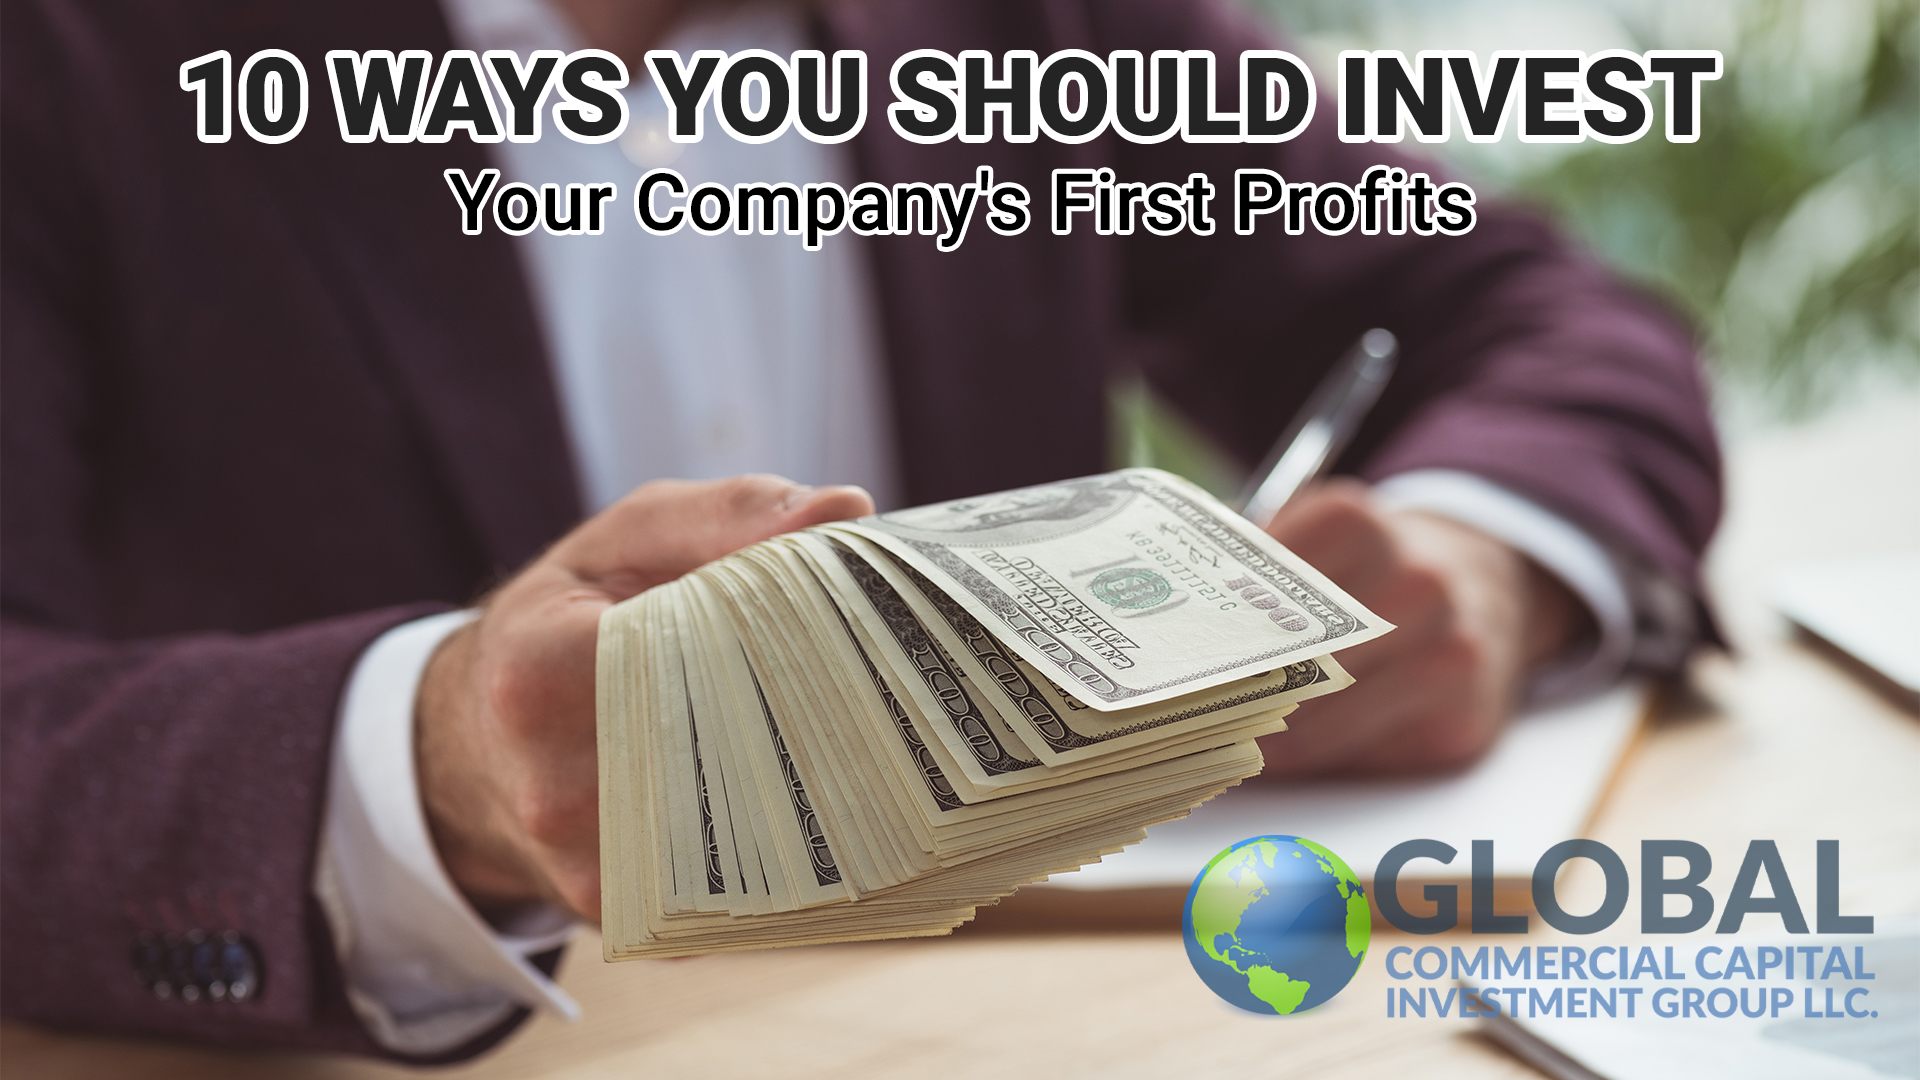 10 Ways You Should Invest Your Company's First Profits